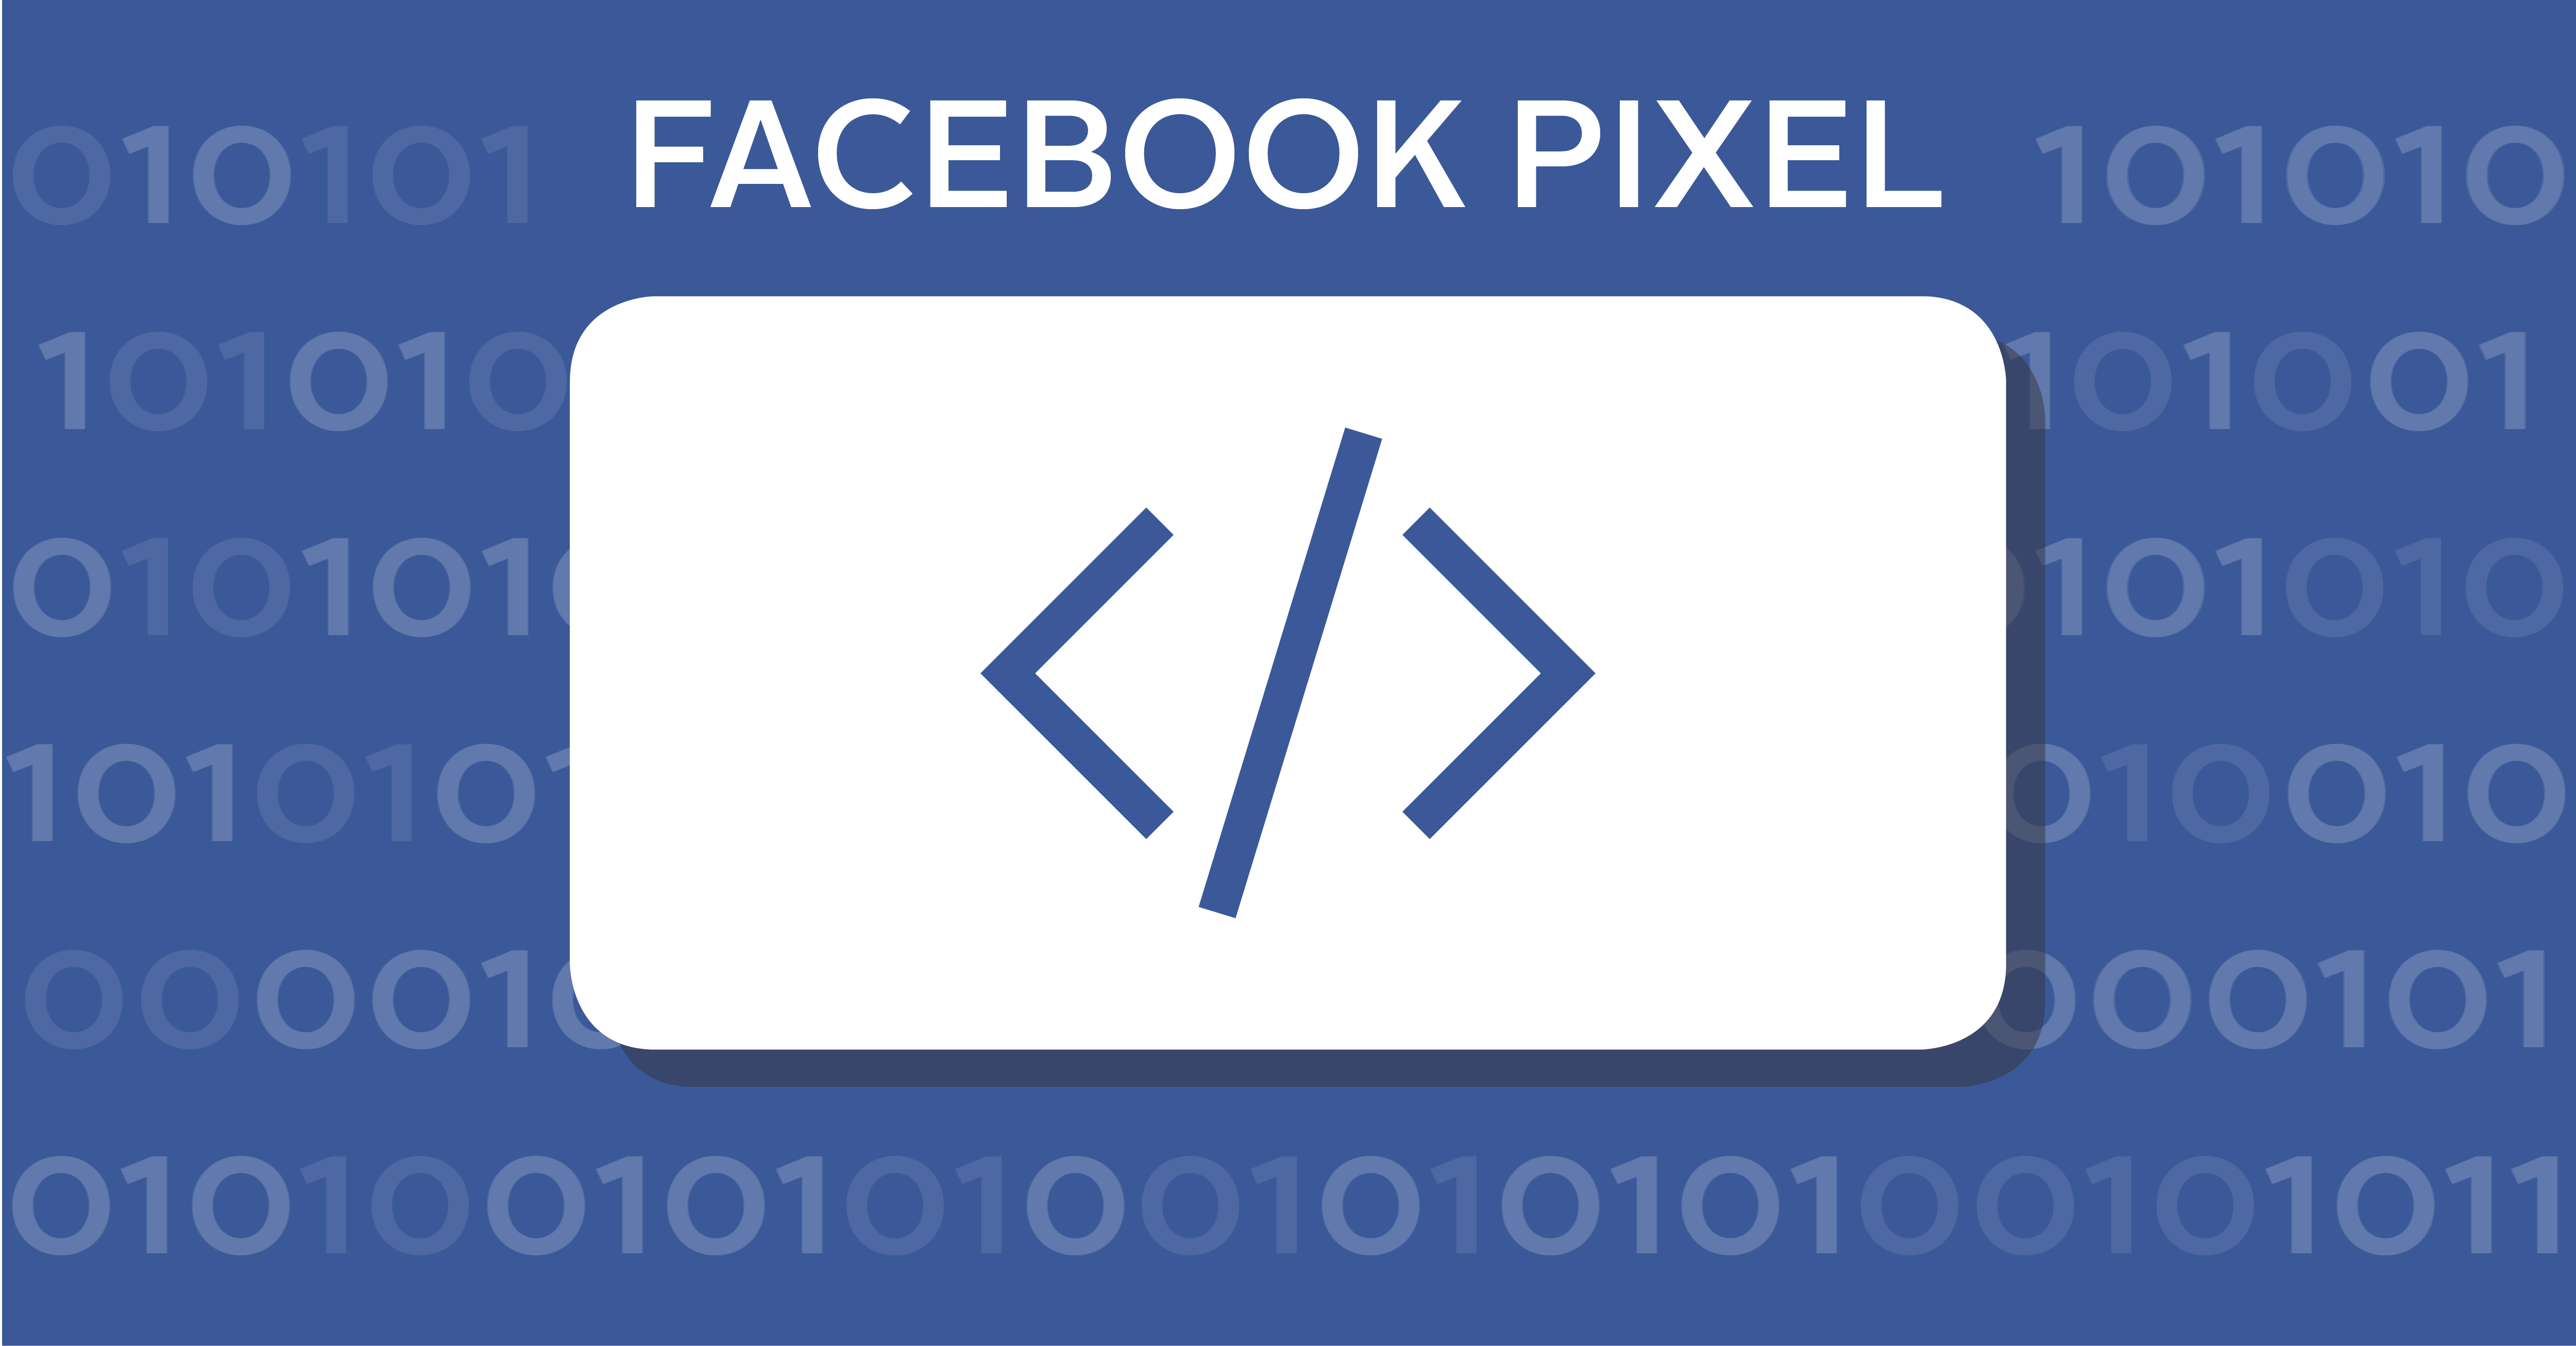 C:\Users\fhh\Desktop\Facebook-pixel-header-blog.png